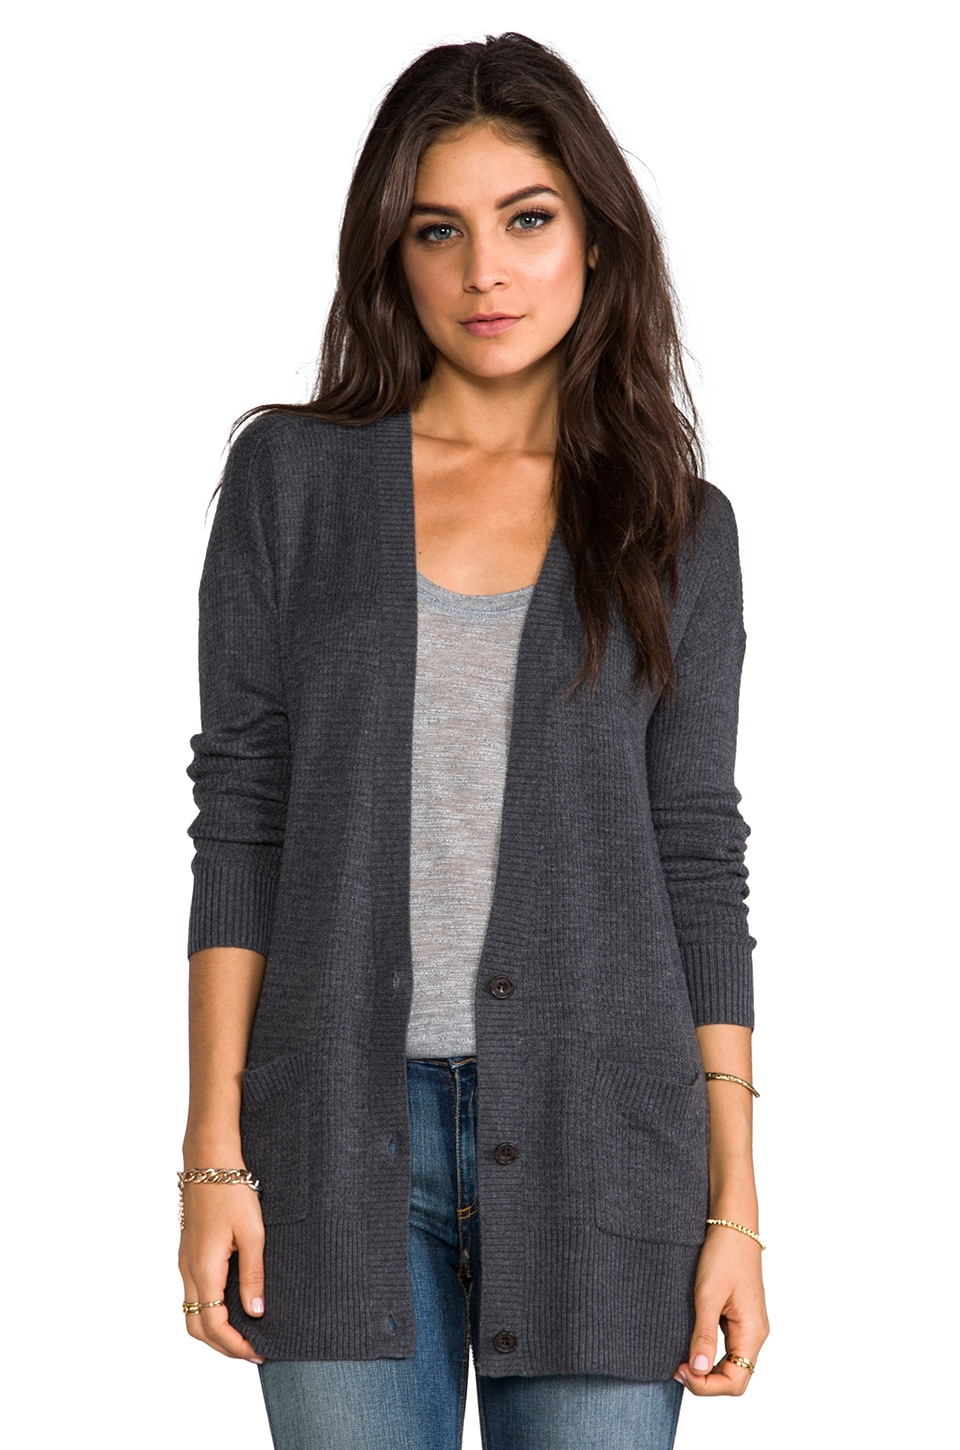 Soft Joie Roper Cardigan in Dark Heather Grey